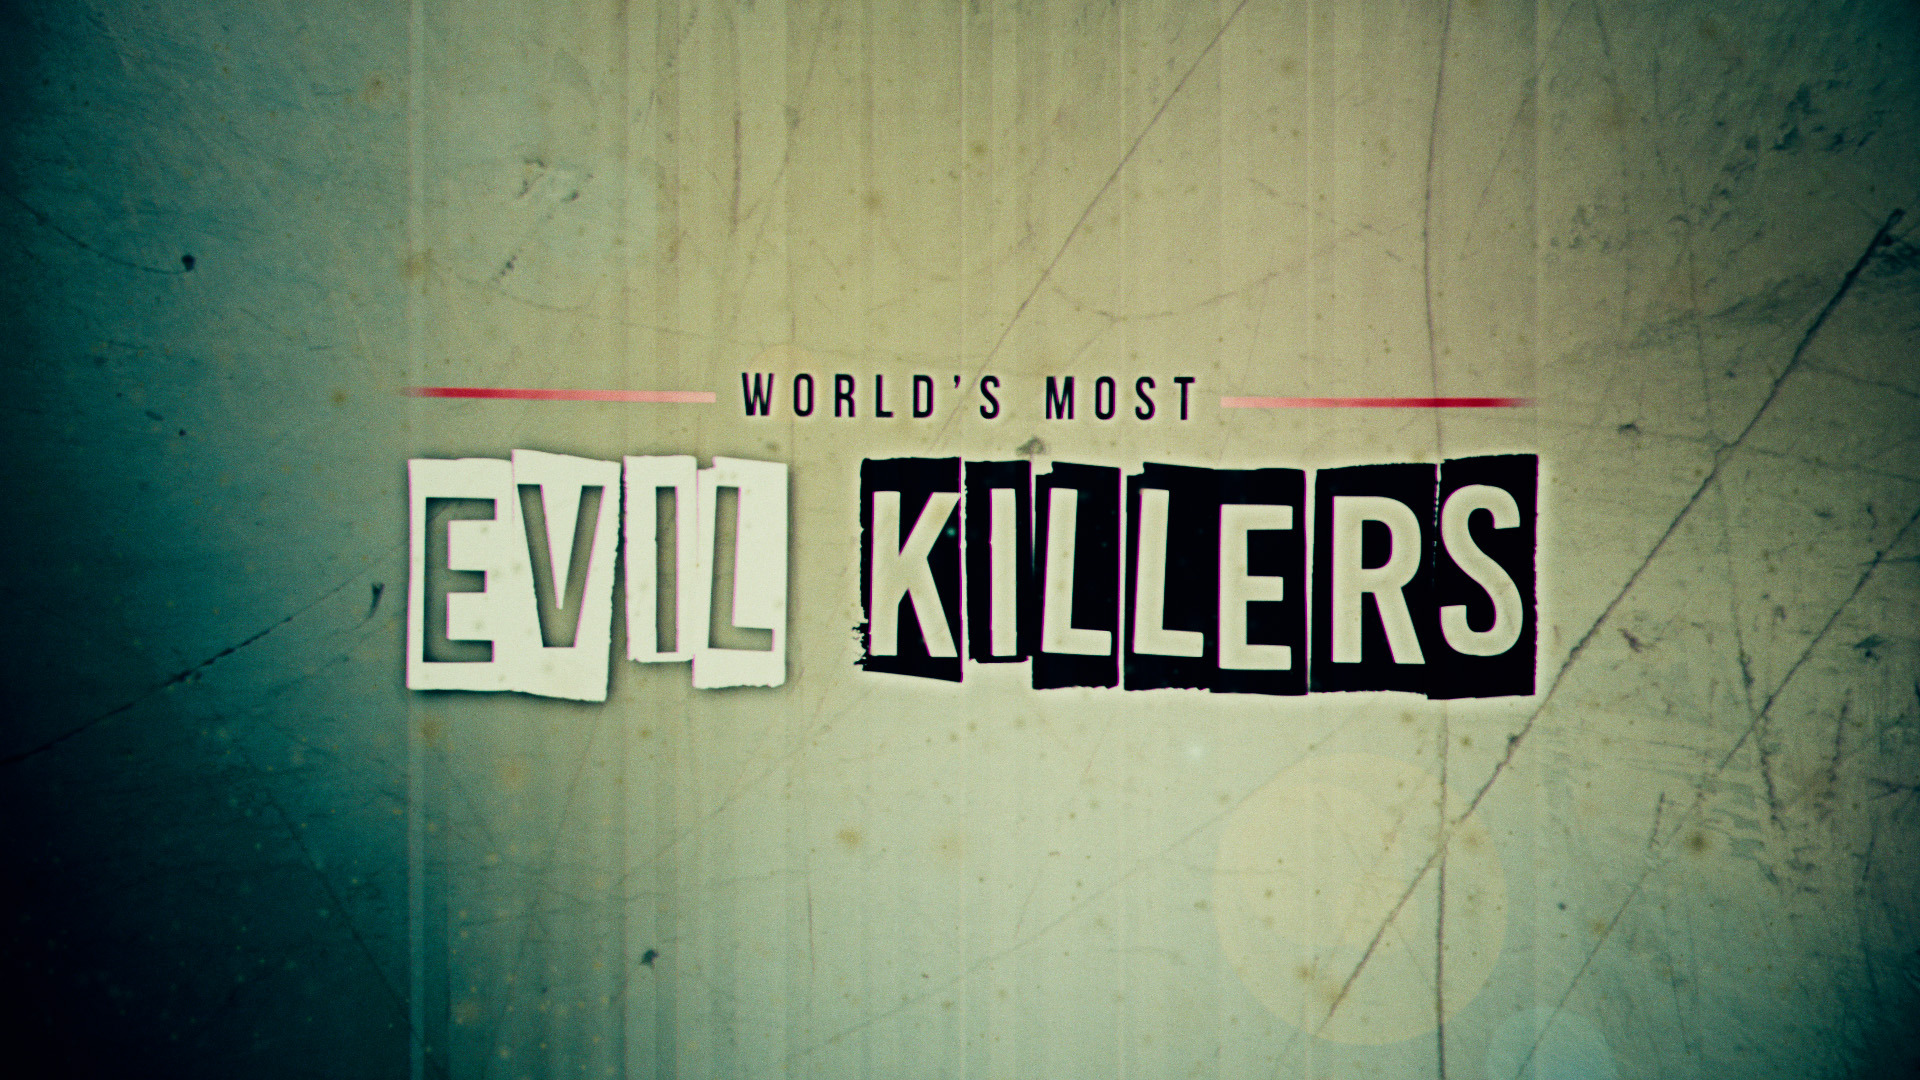 Show World's Most Evil Killers